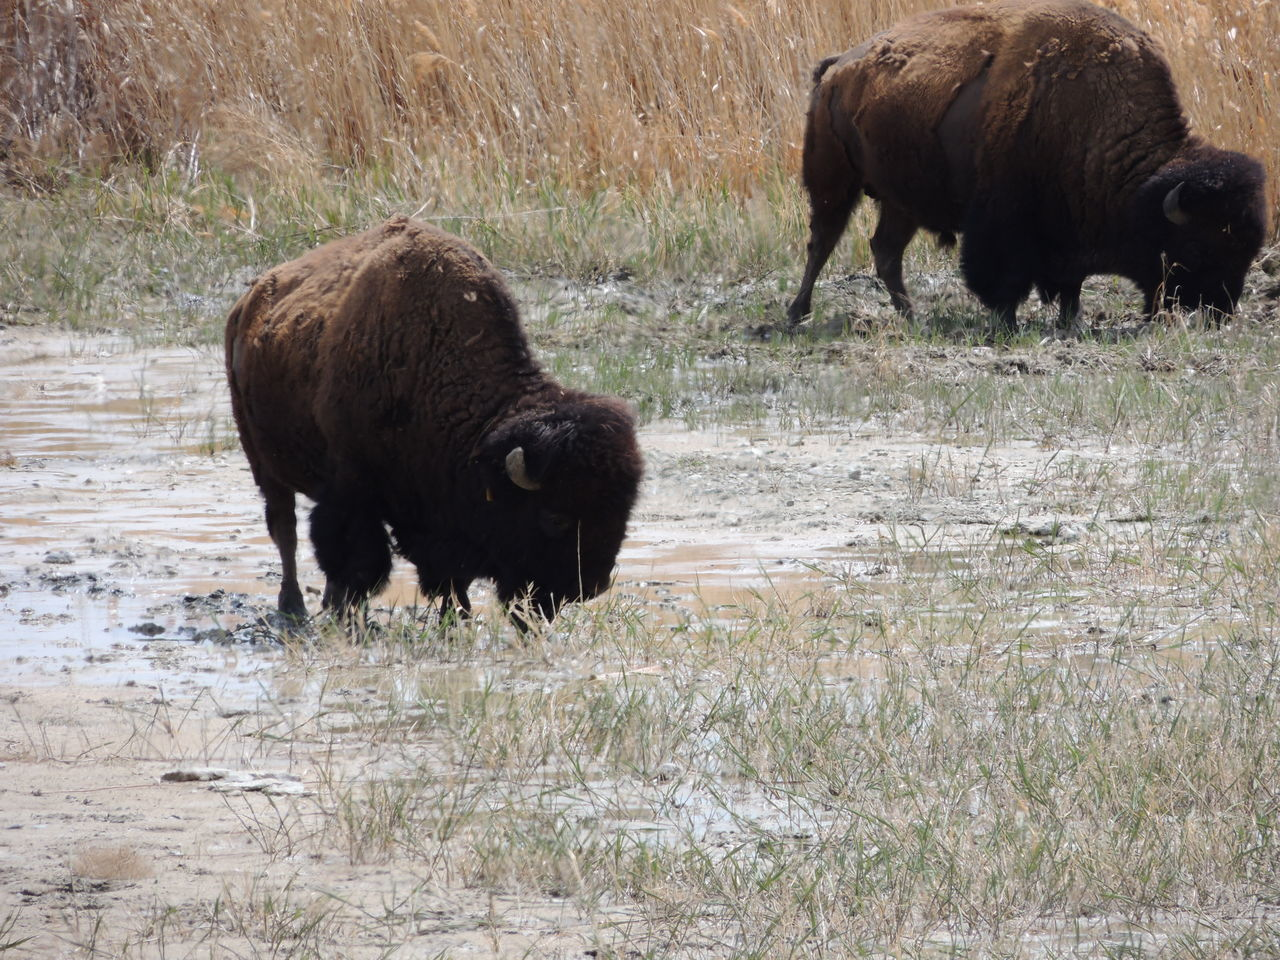 animal, animal themes, mammal, group of animals, animals in the wild, animal wildlife, vertebrate, land, grass, field, american bison, domestic animals, nature, livestock, day, no people, two animals, plant, standing, outdoors, herbivorous